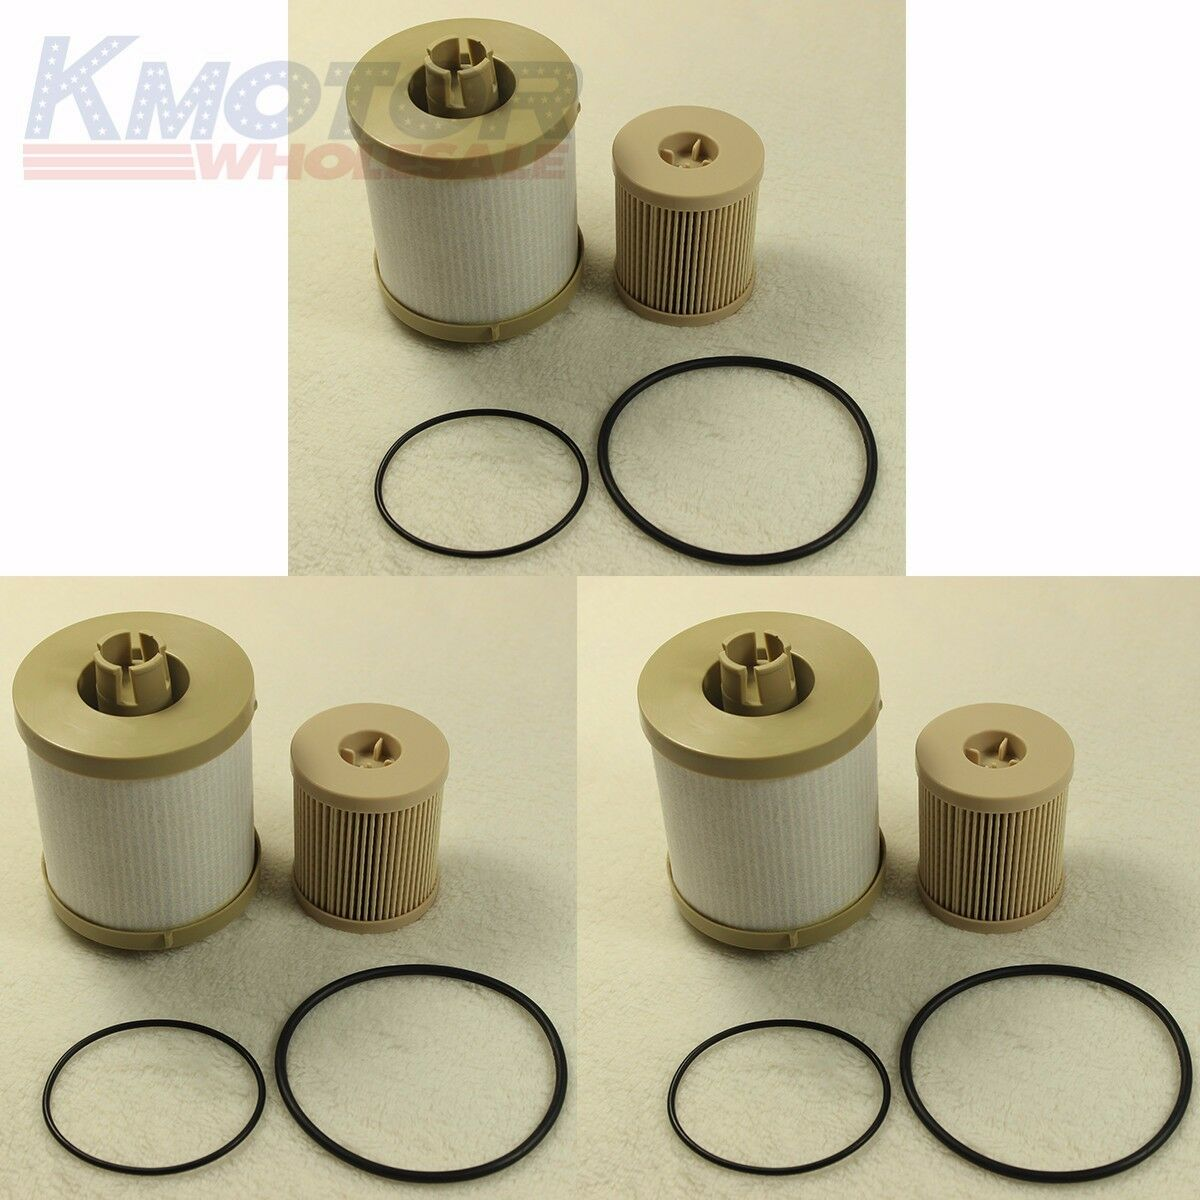 3 Fuel Filters Filter Oe Spec Ford F Series 60l 03 07 Powerstroke 6 0 Updated Turbo 1 Of 7free Shipping